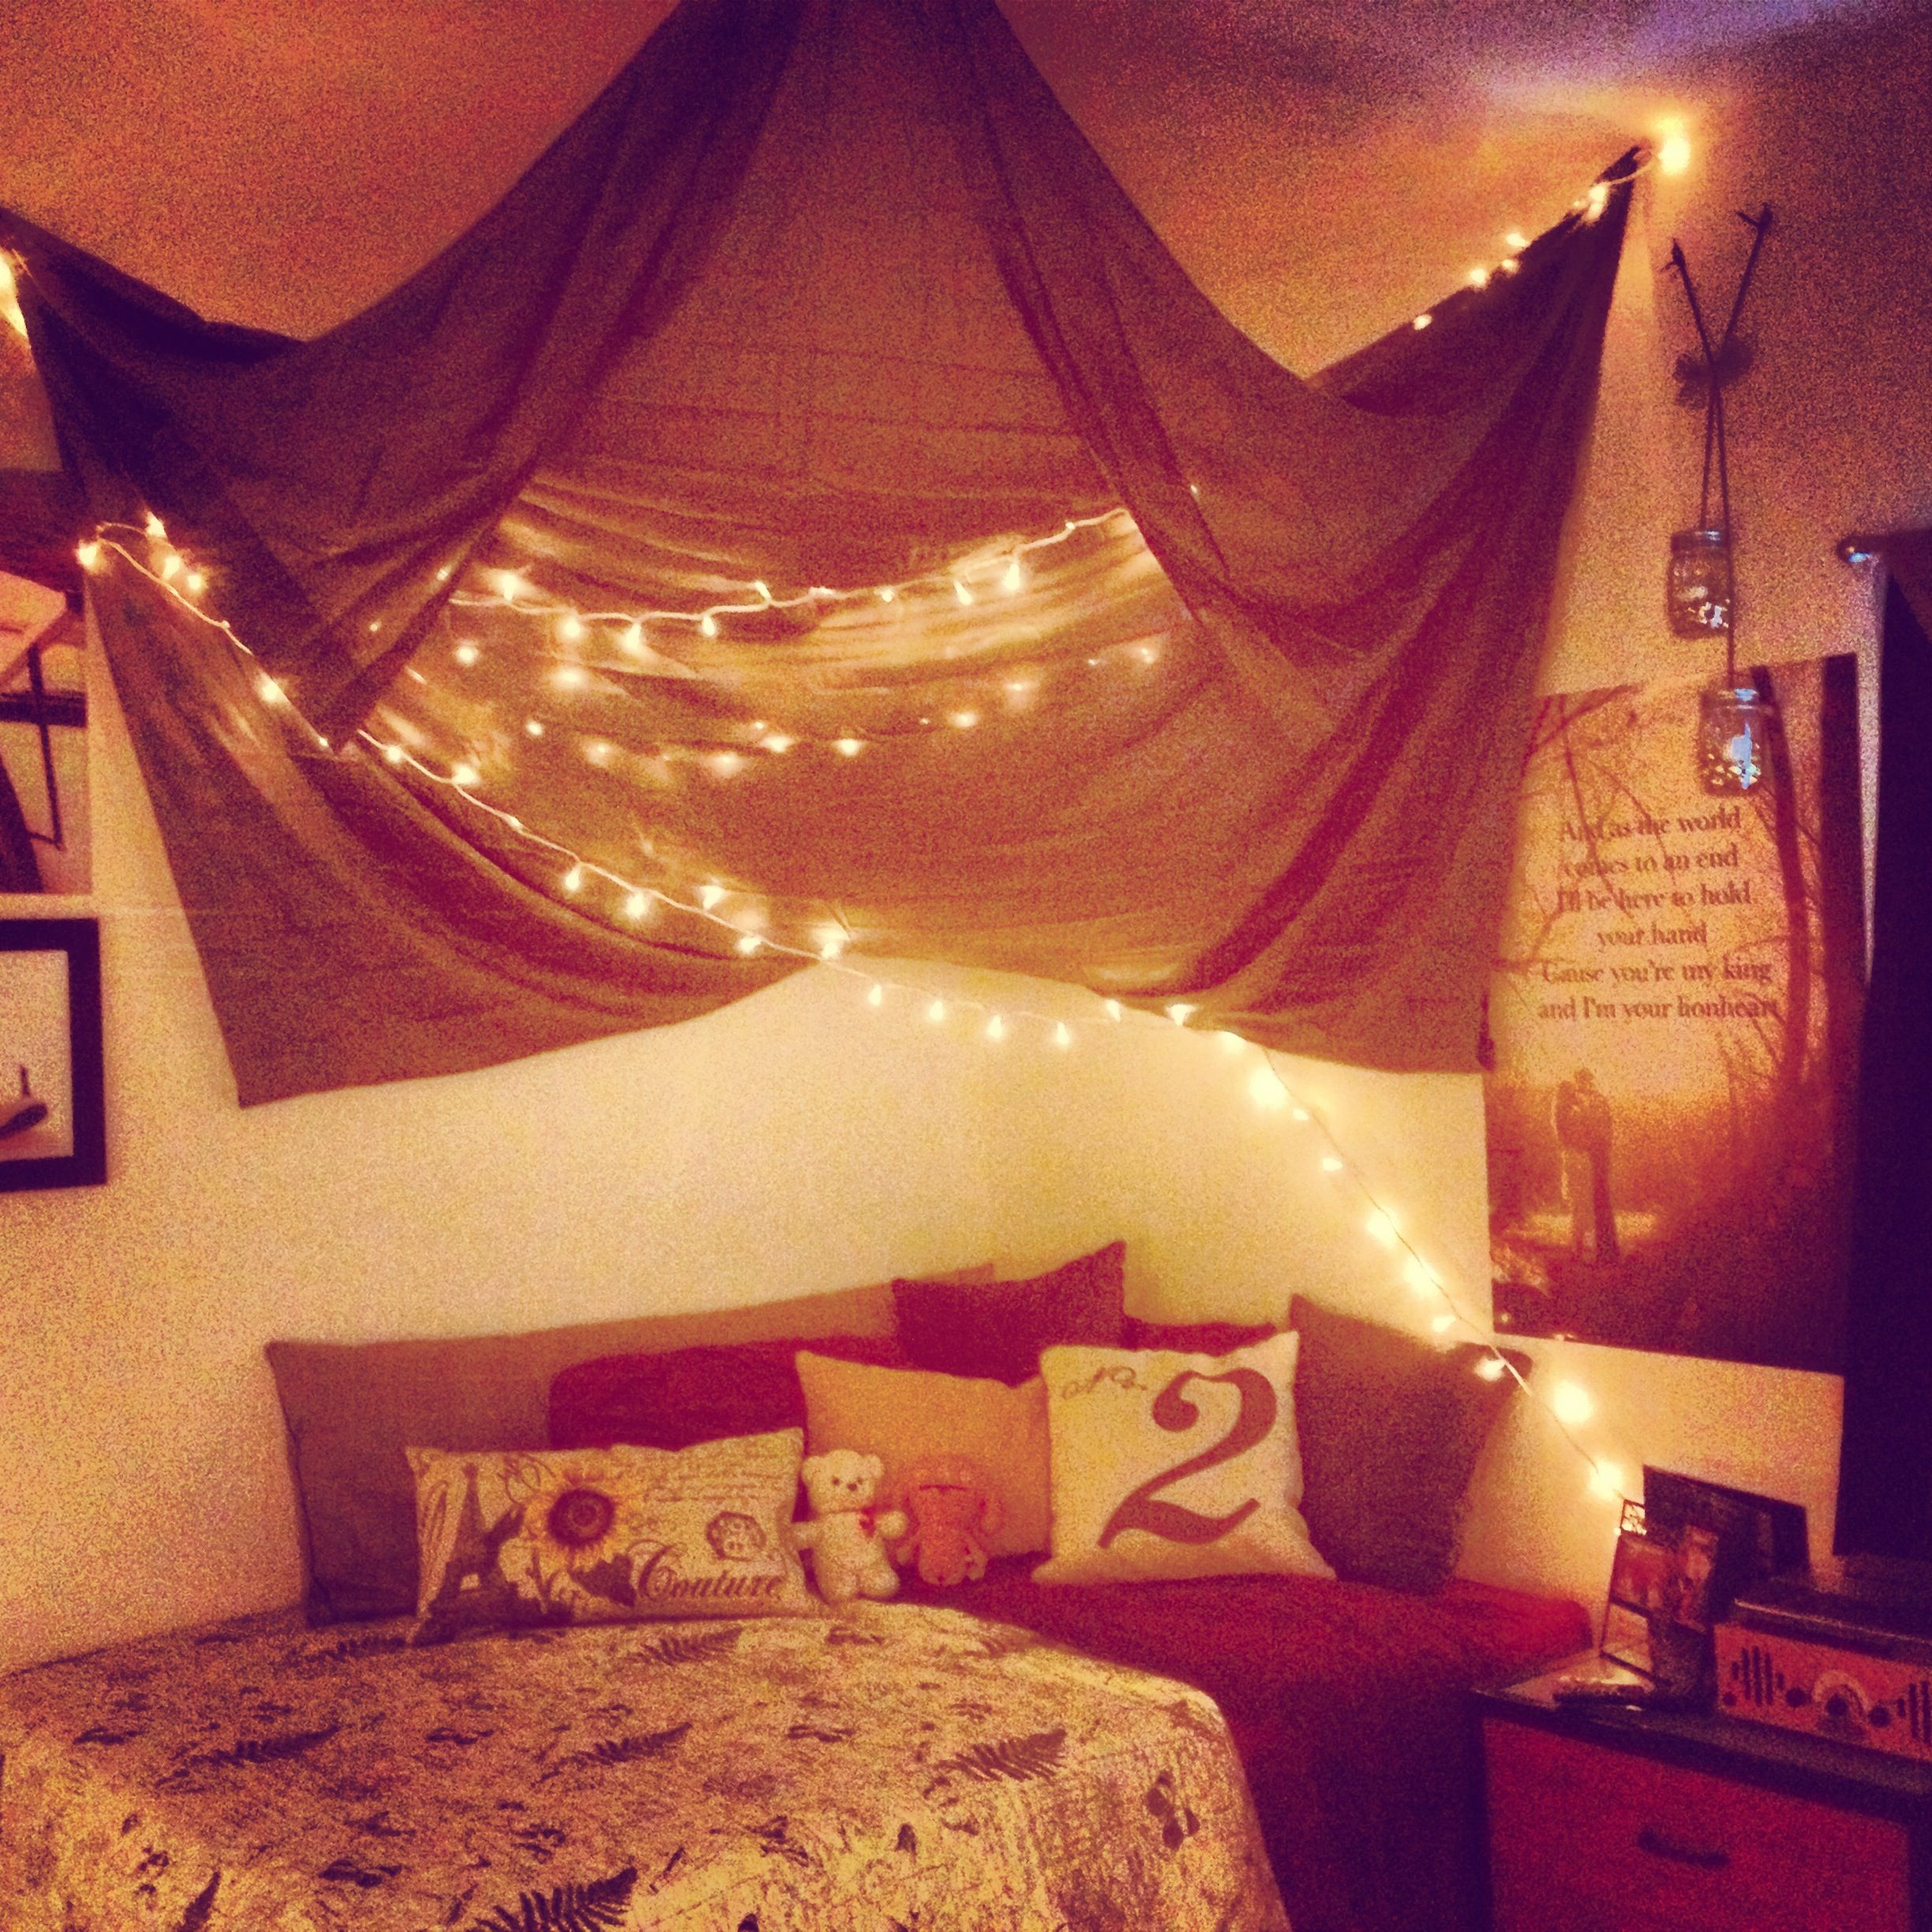 hipster bedroom decorations those lights are so pretty - Indie Bedroom Decor